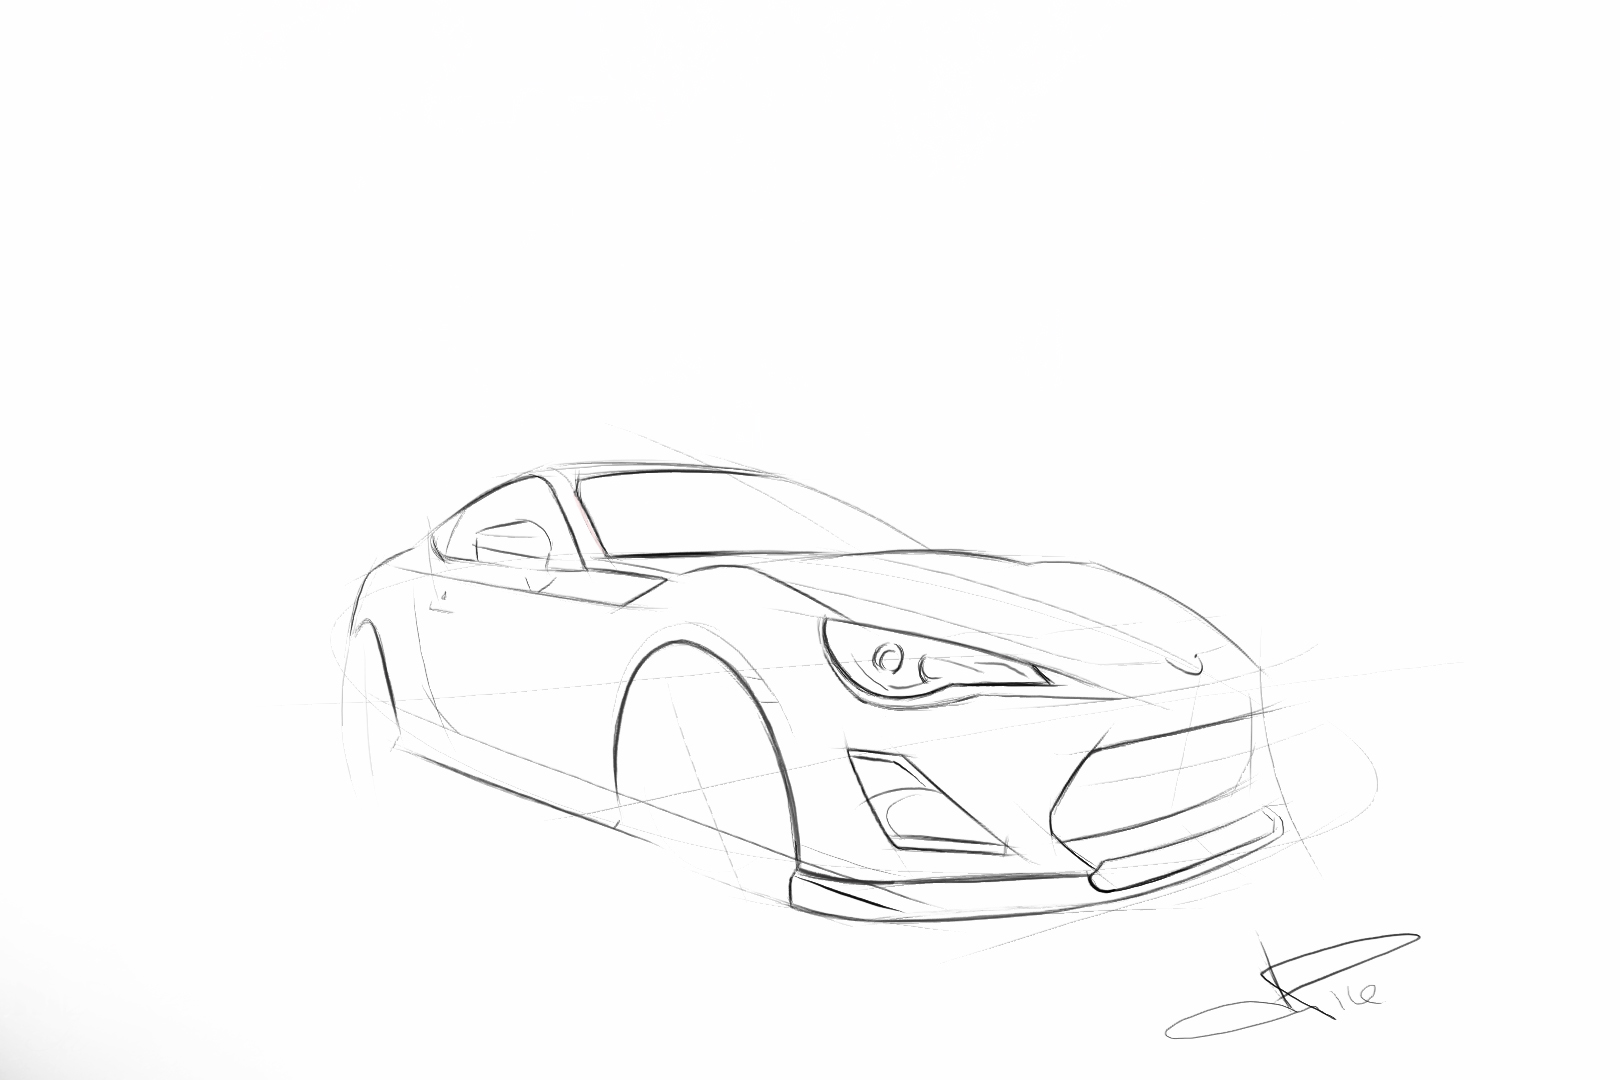 Handmade Digital Sketches Of Your Car By Pelloni Design